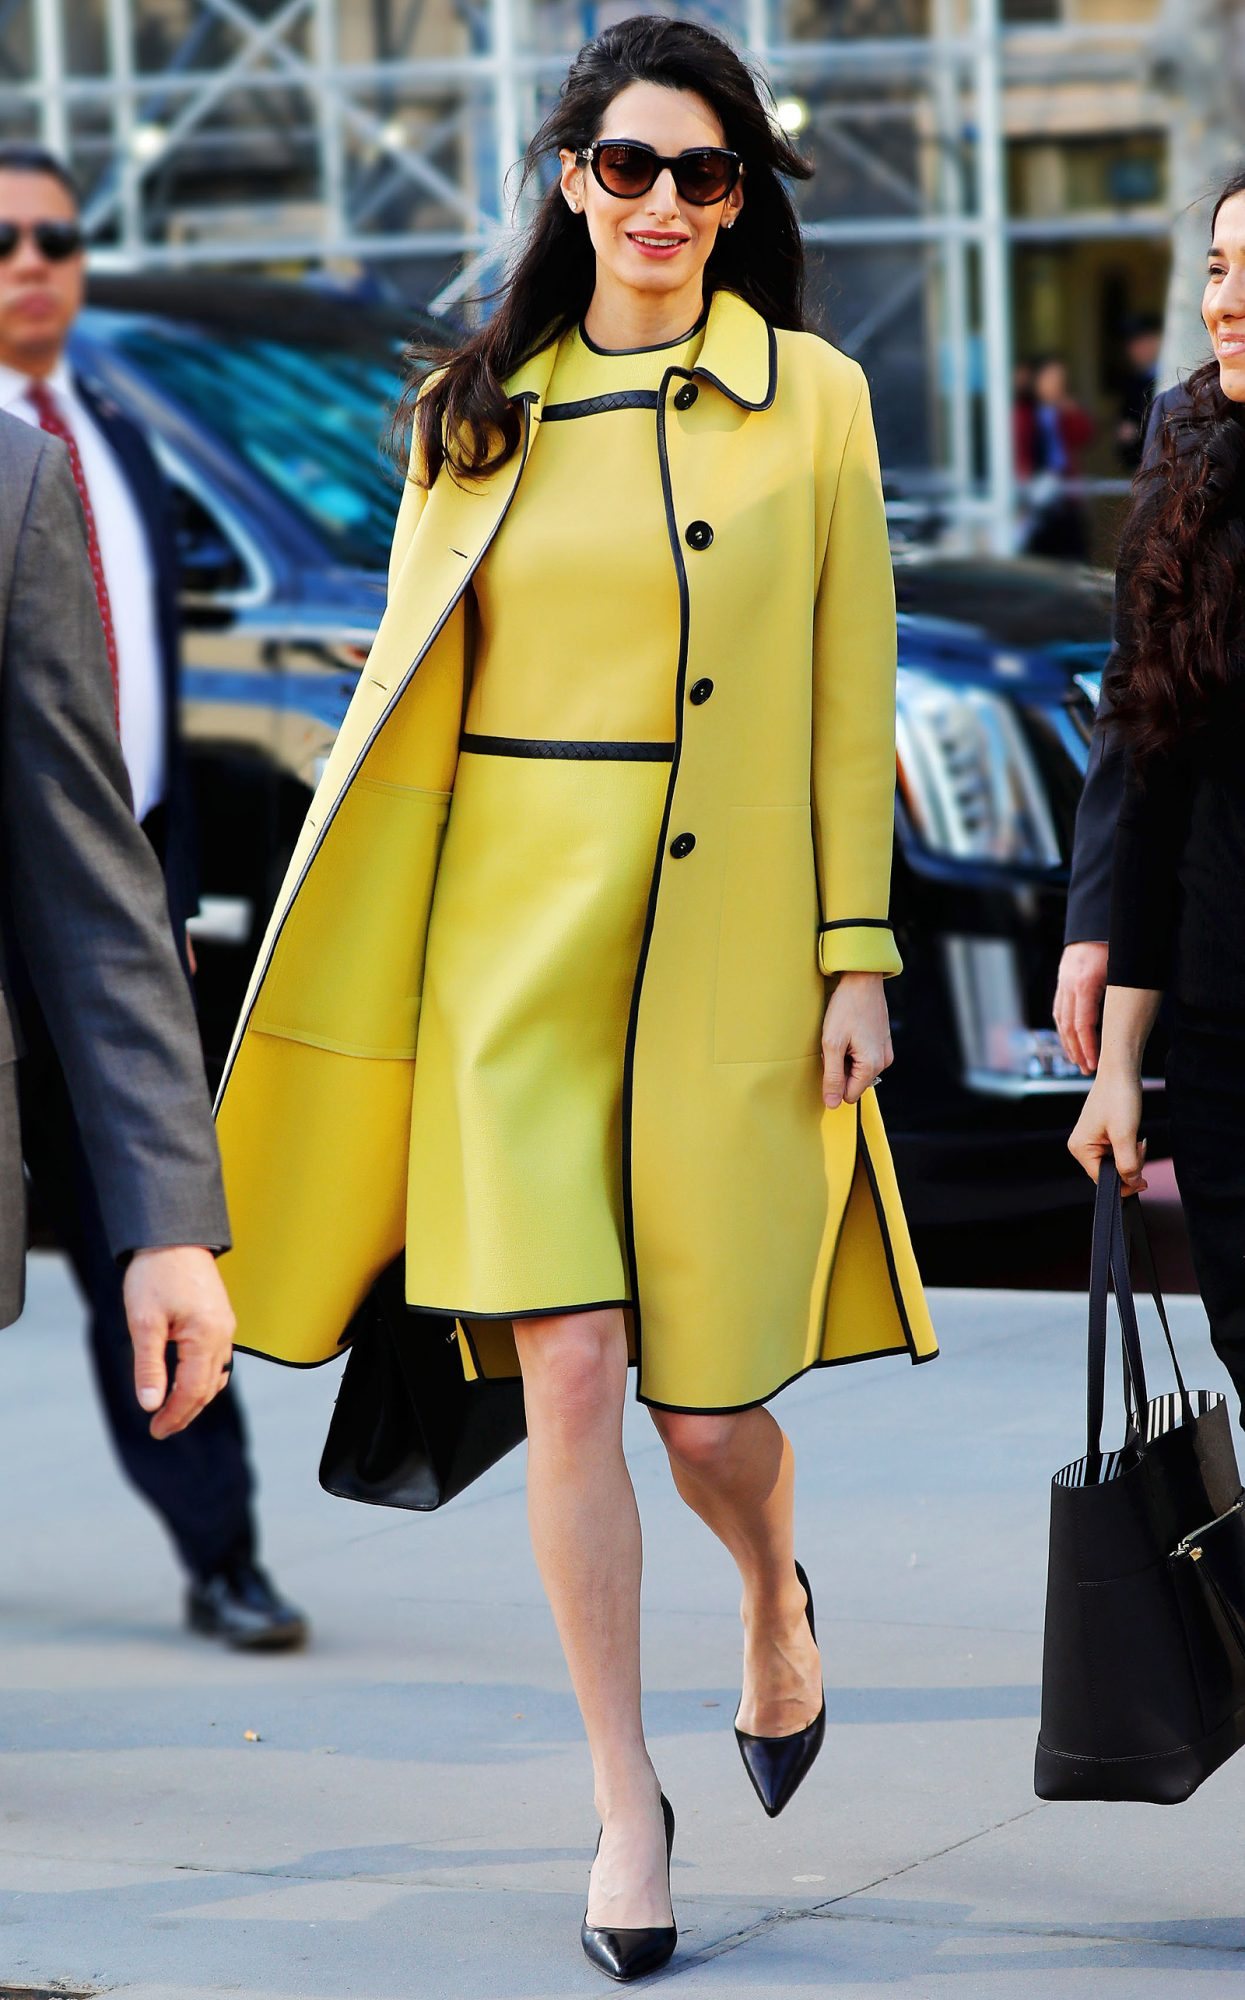 Amal Clooney shows off her pregnant belly in a dazzling canary yellow outfit when walking to the UN in New York